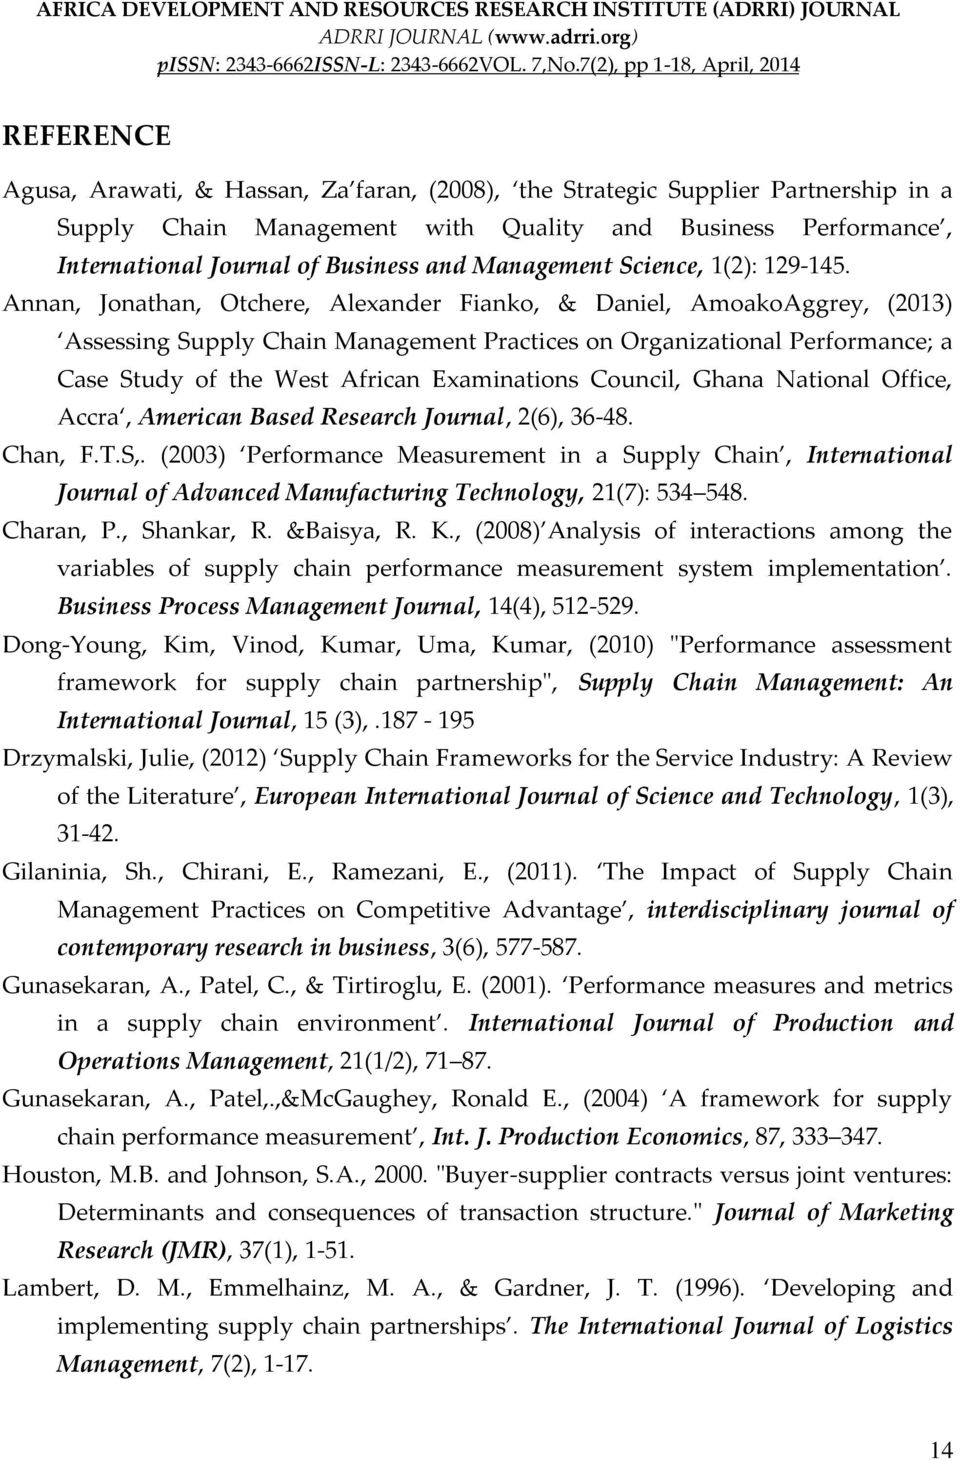 Annan, Jonathan, Otchere, Alexander Fianko, & Daniel, AmoakoAggrey, (2013) Assessing Supply Chain Management Practices on Organizational Performance; a Case Study of the West African Examinations